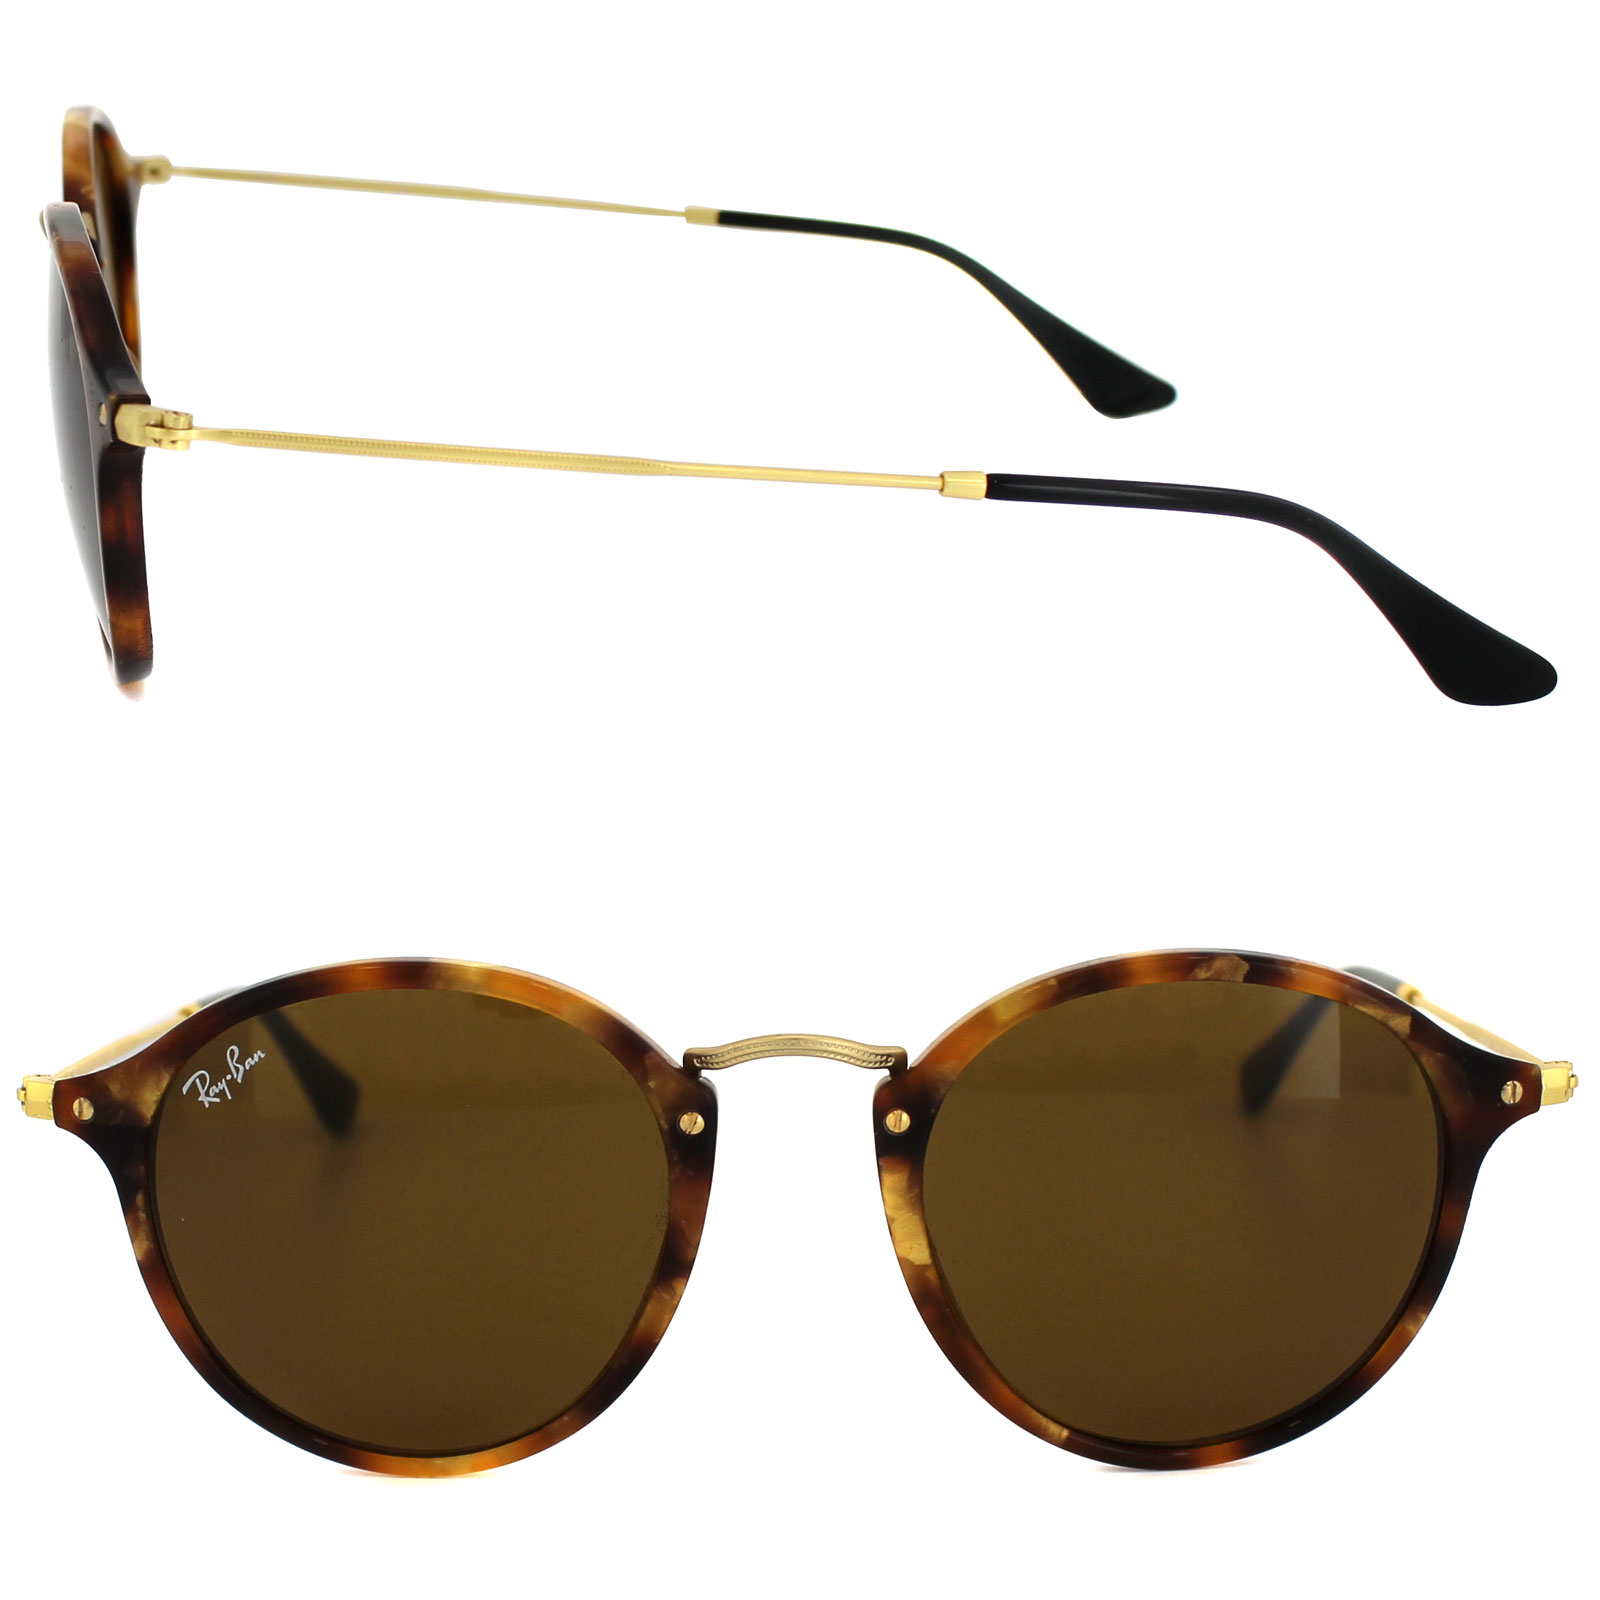 e2bd1a1295f Ray-ban Round Rb 2447 Sunglasses - Tortoise - Bitterroot Public Library